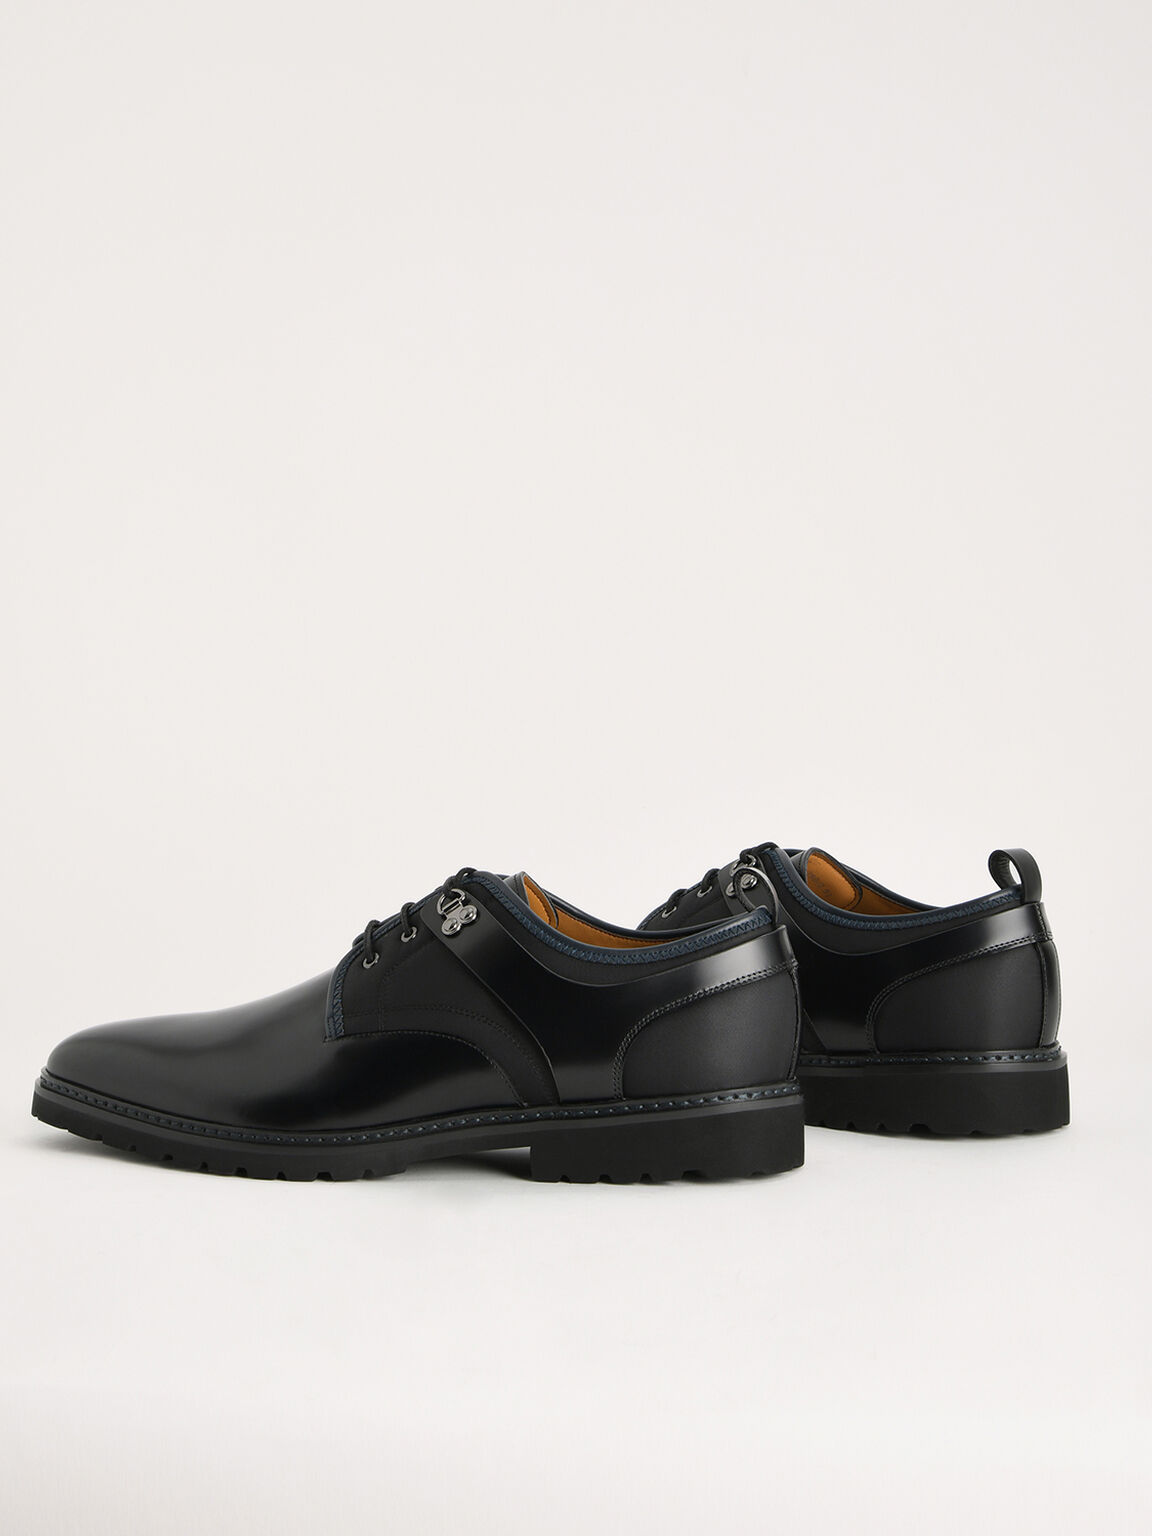 Boxed Calf Leather Derby Shoes, Black, hi-res